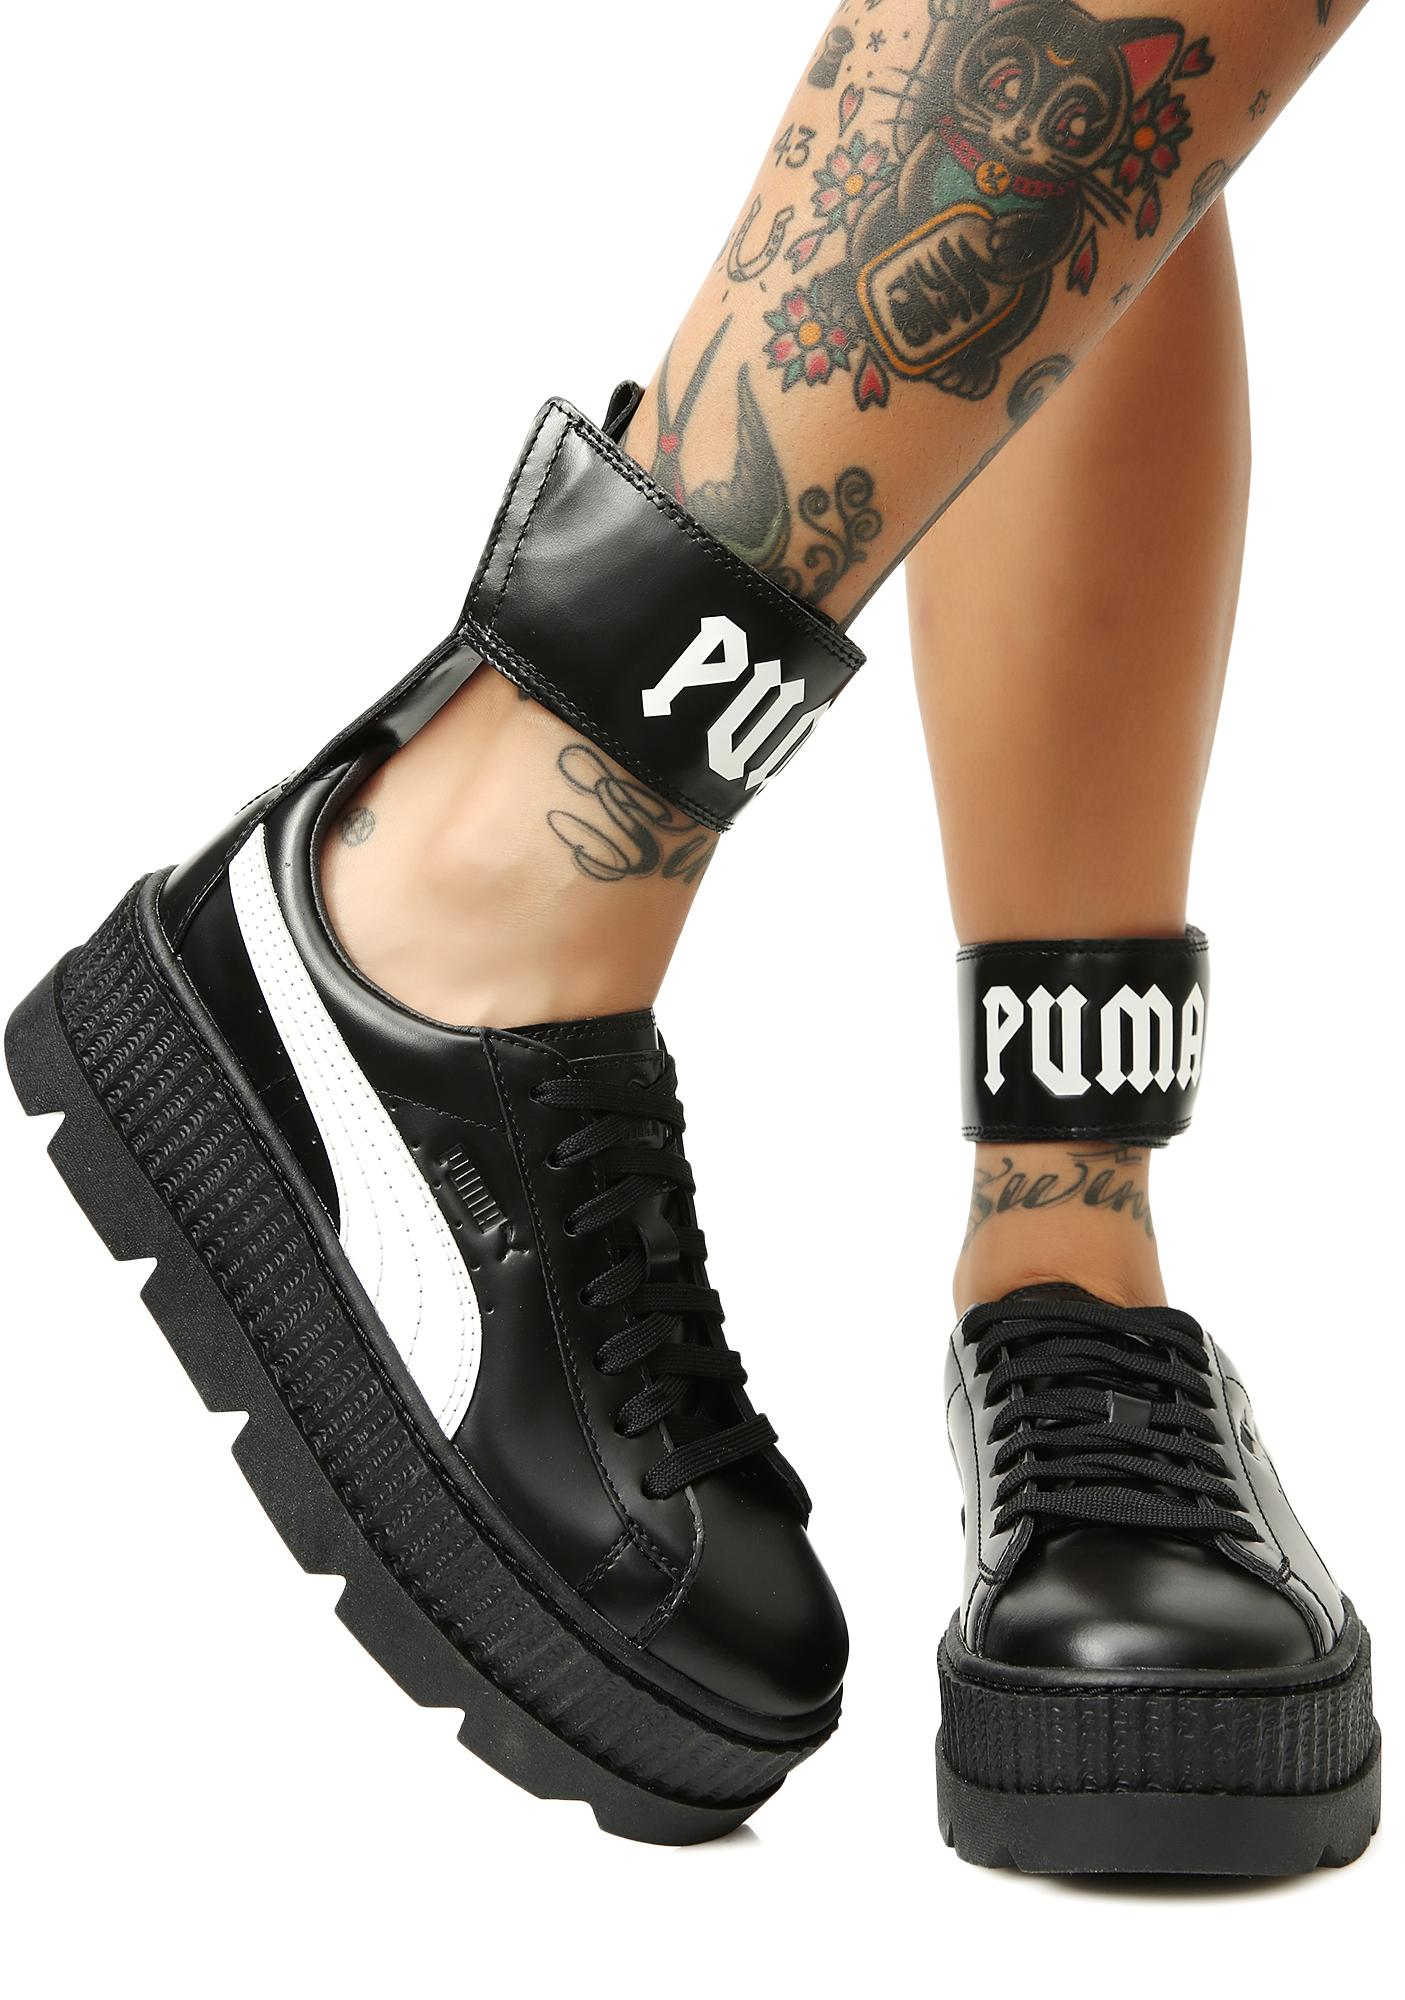 b7eb80c3df8 PUMA Midnight FENTY PUMA by Rihanna Ankle Strap Sneakers